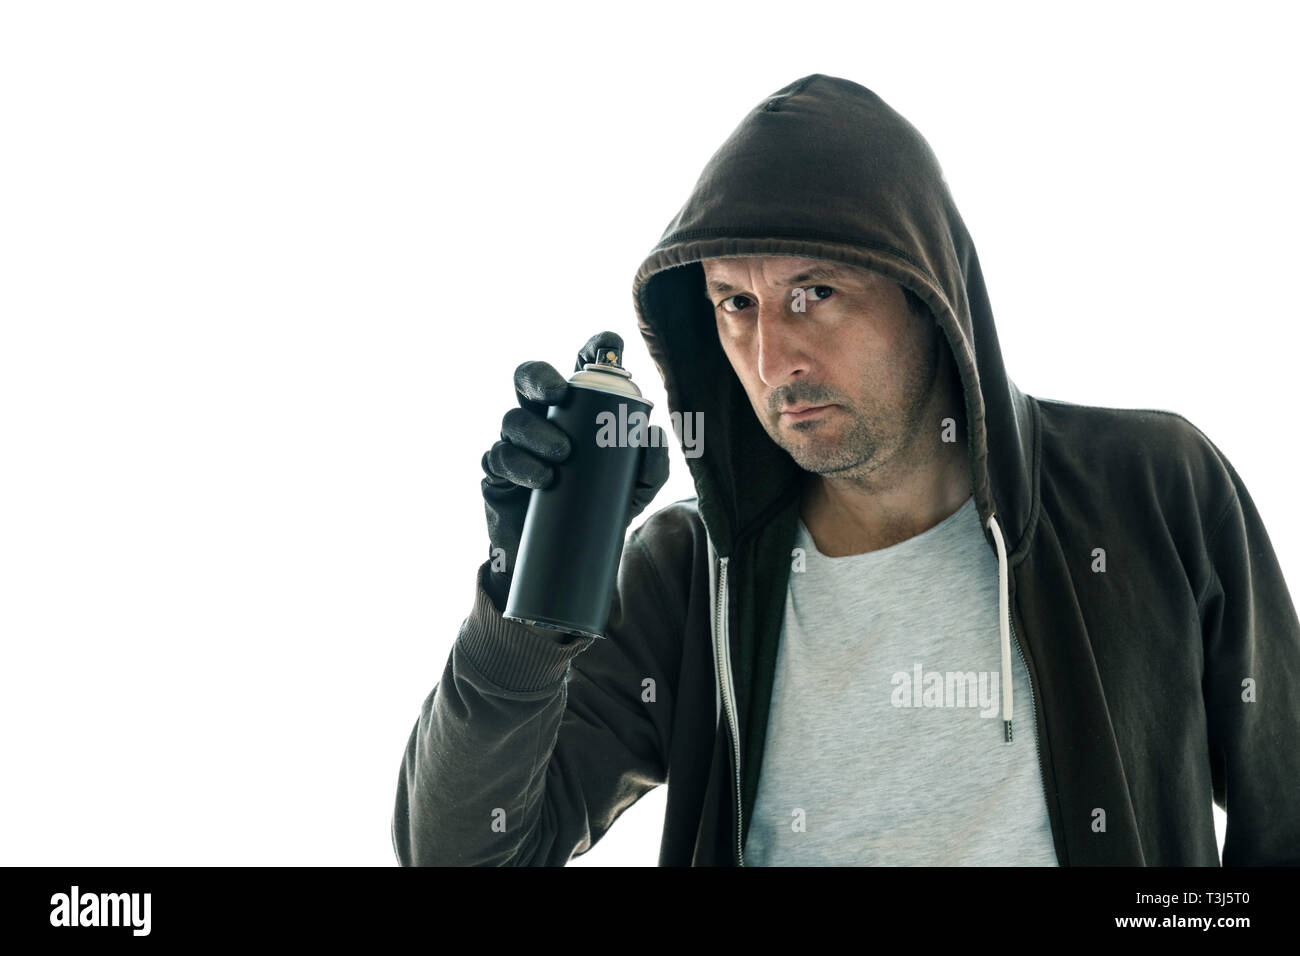 Hooded graffiti artist with spray paint can isolated on white background - Stock Image